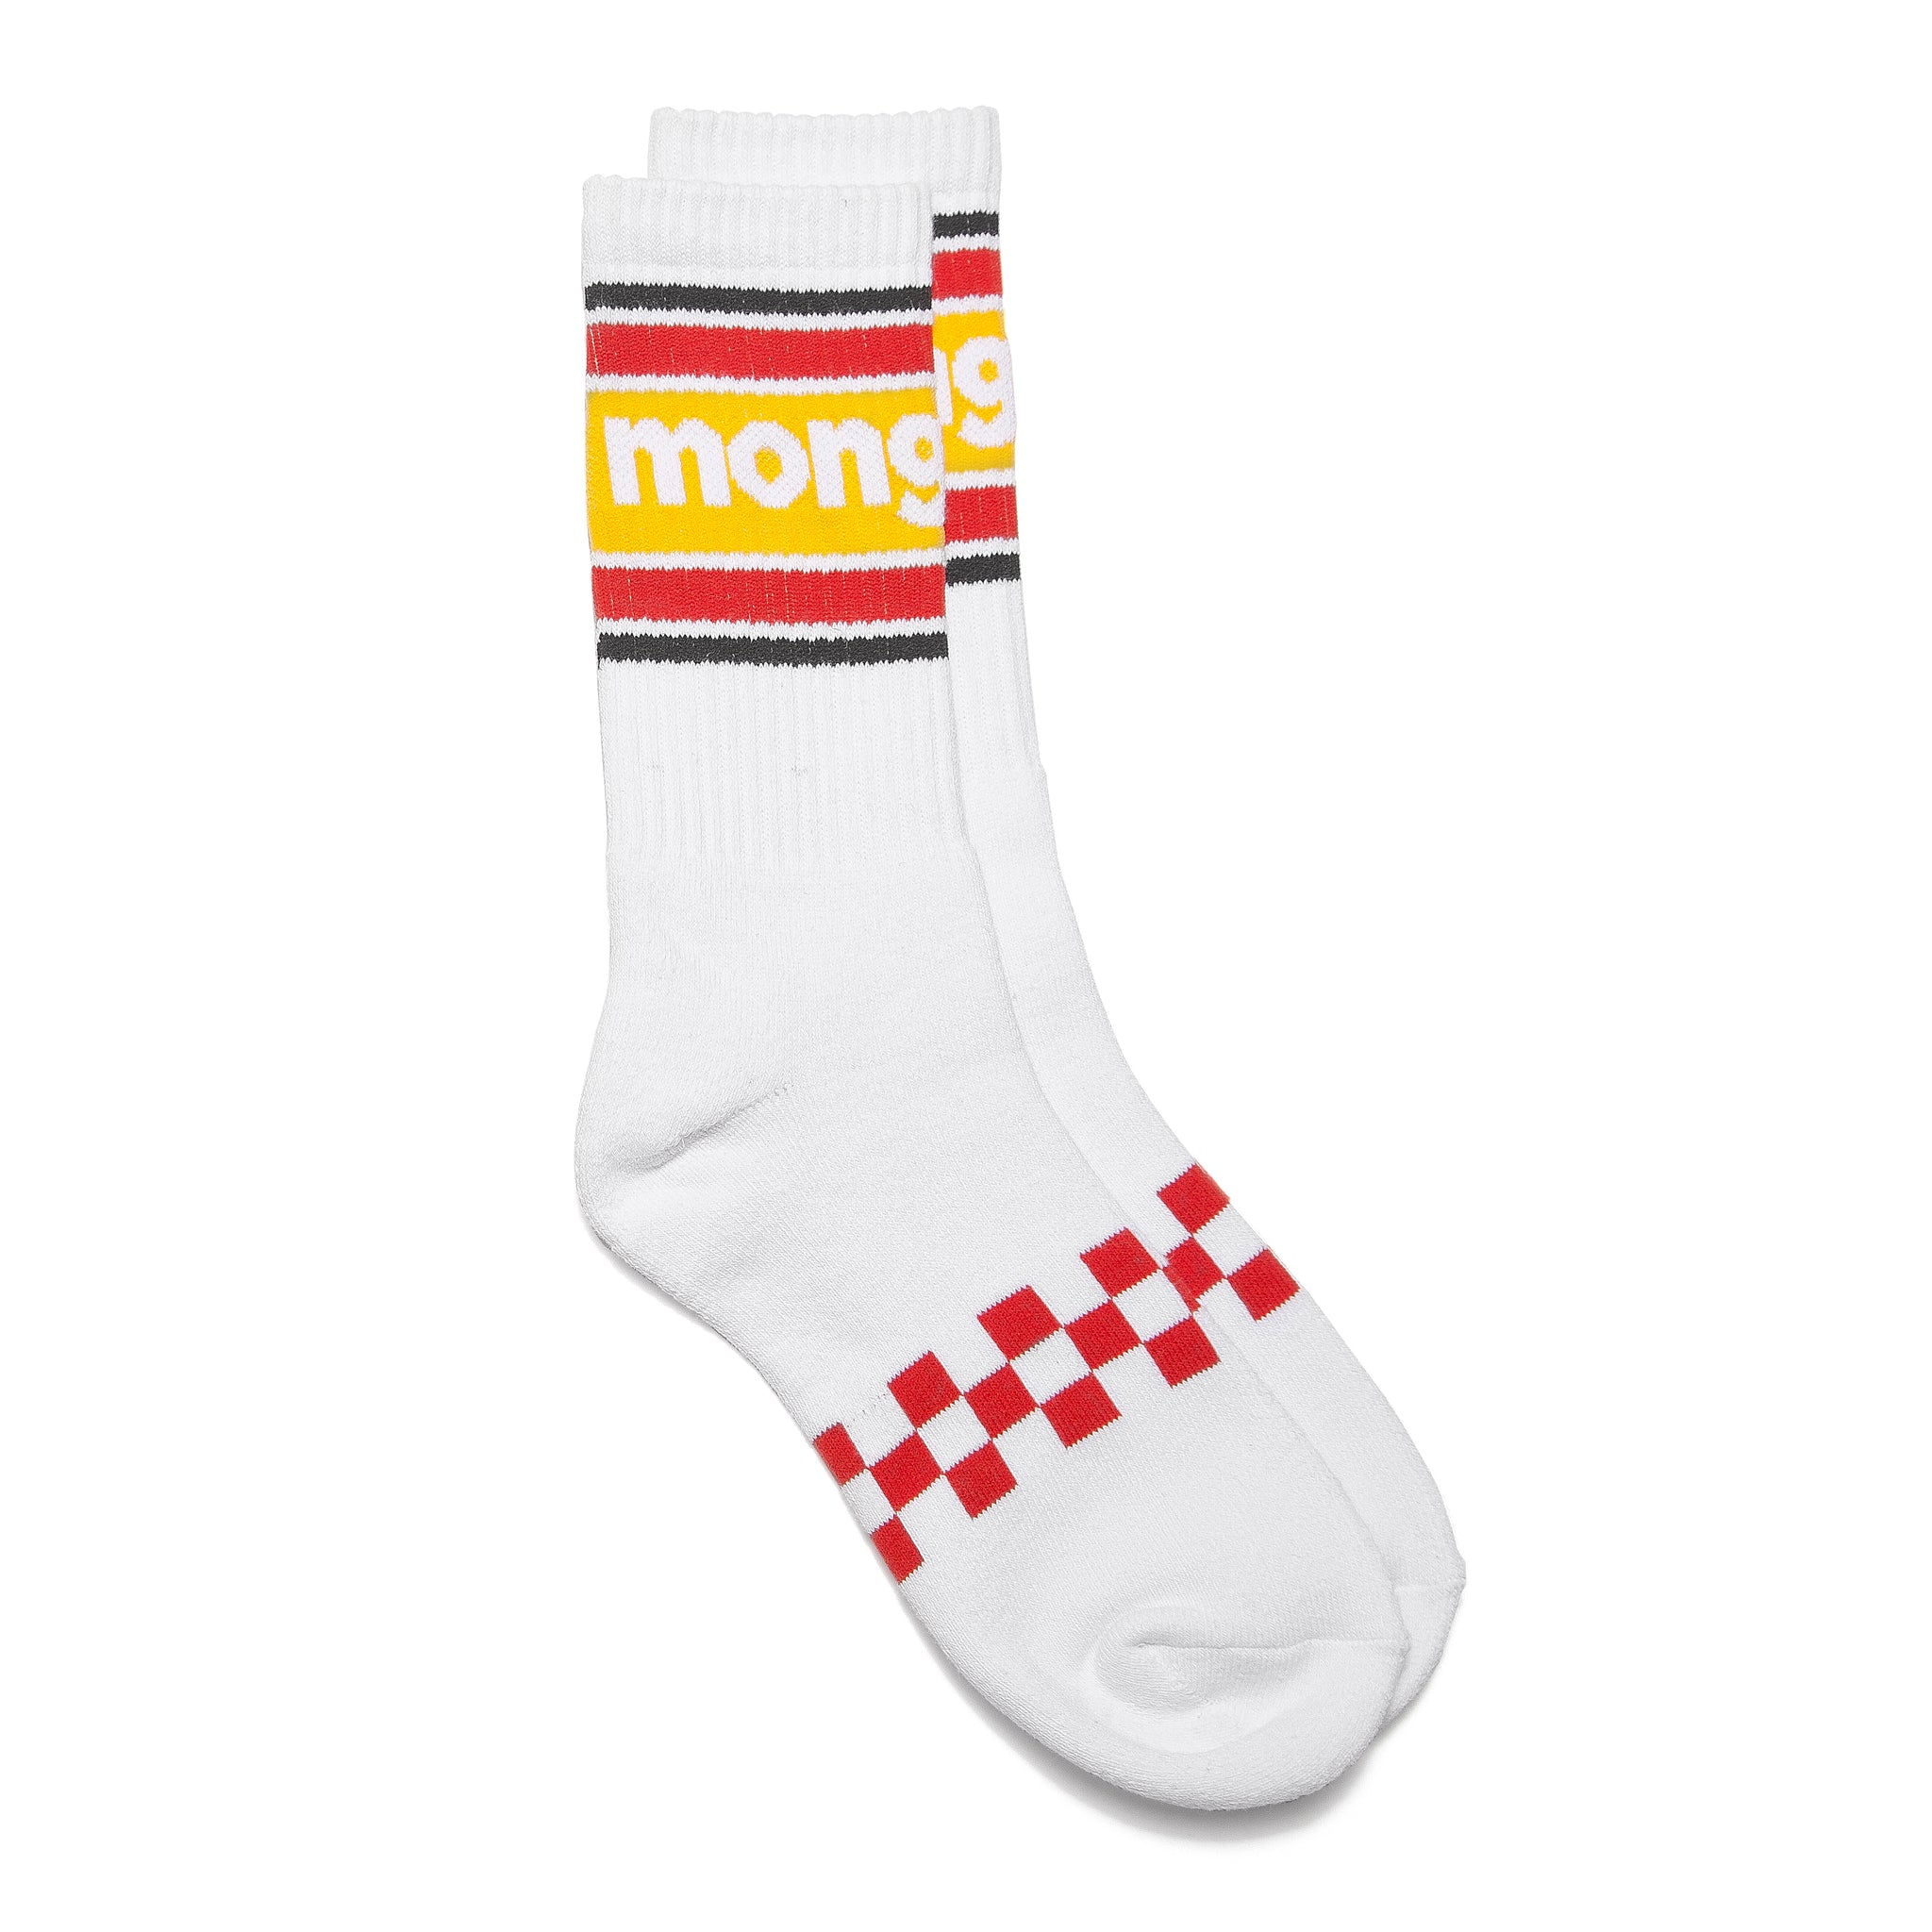 Mongoose Checkerboard Sock - White